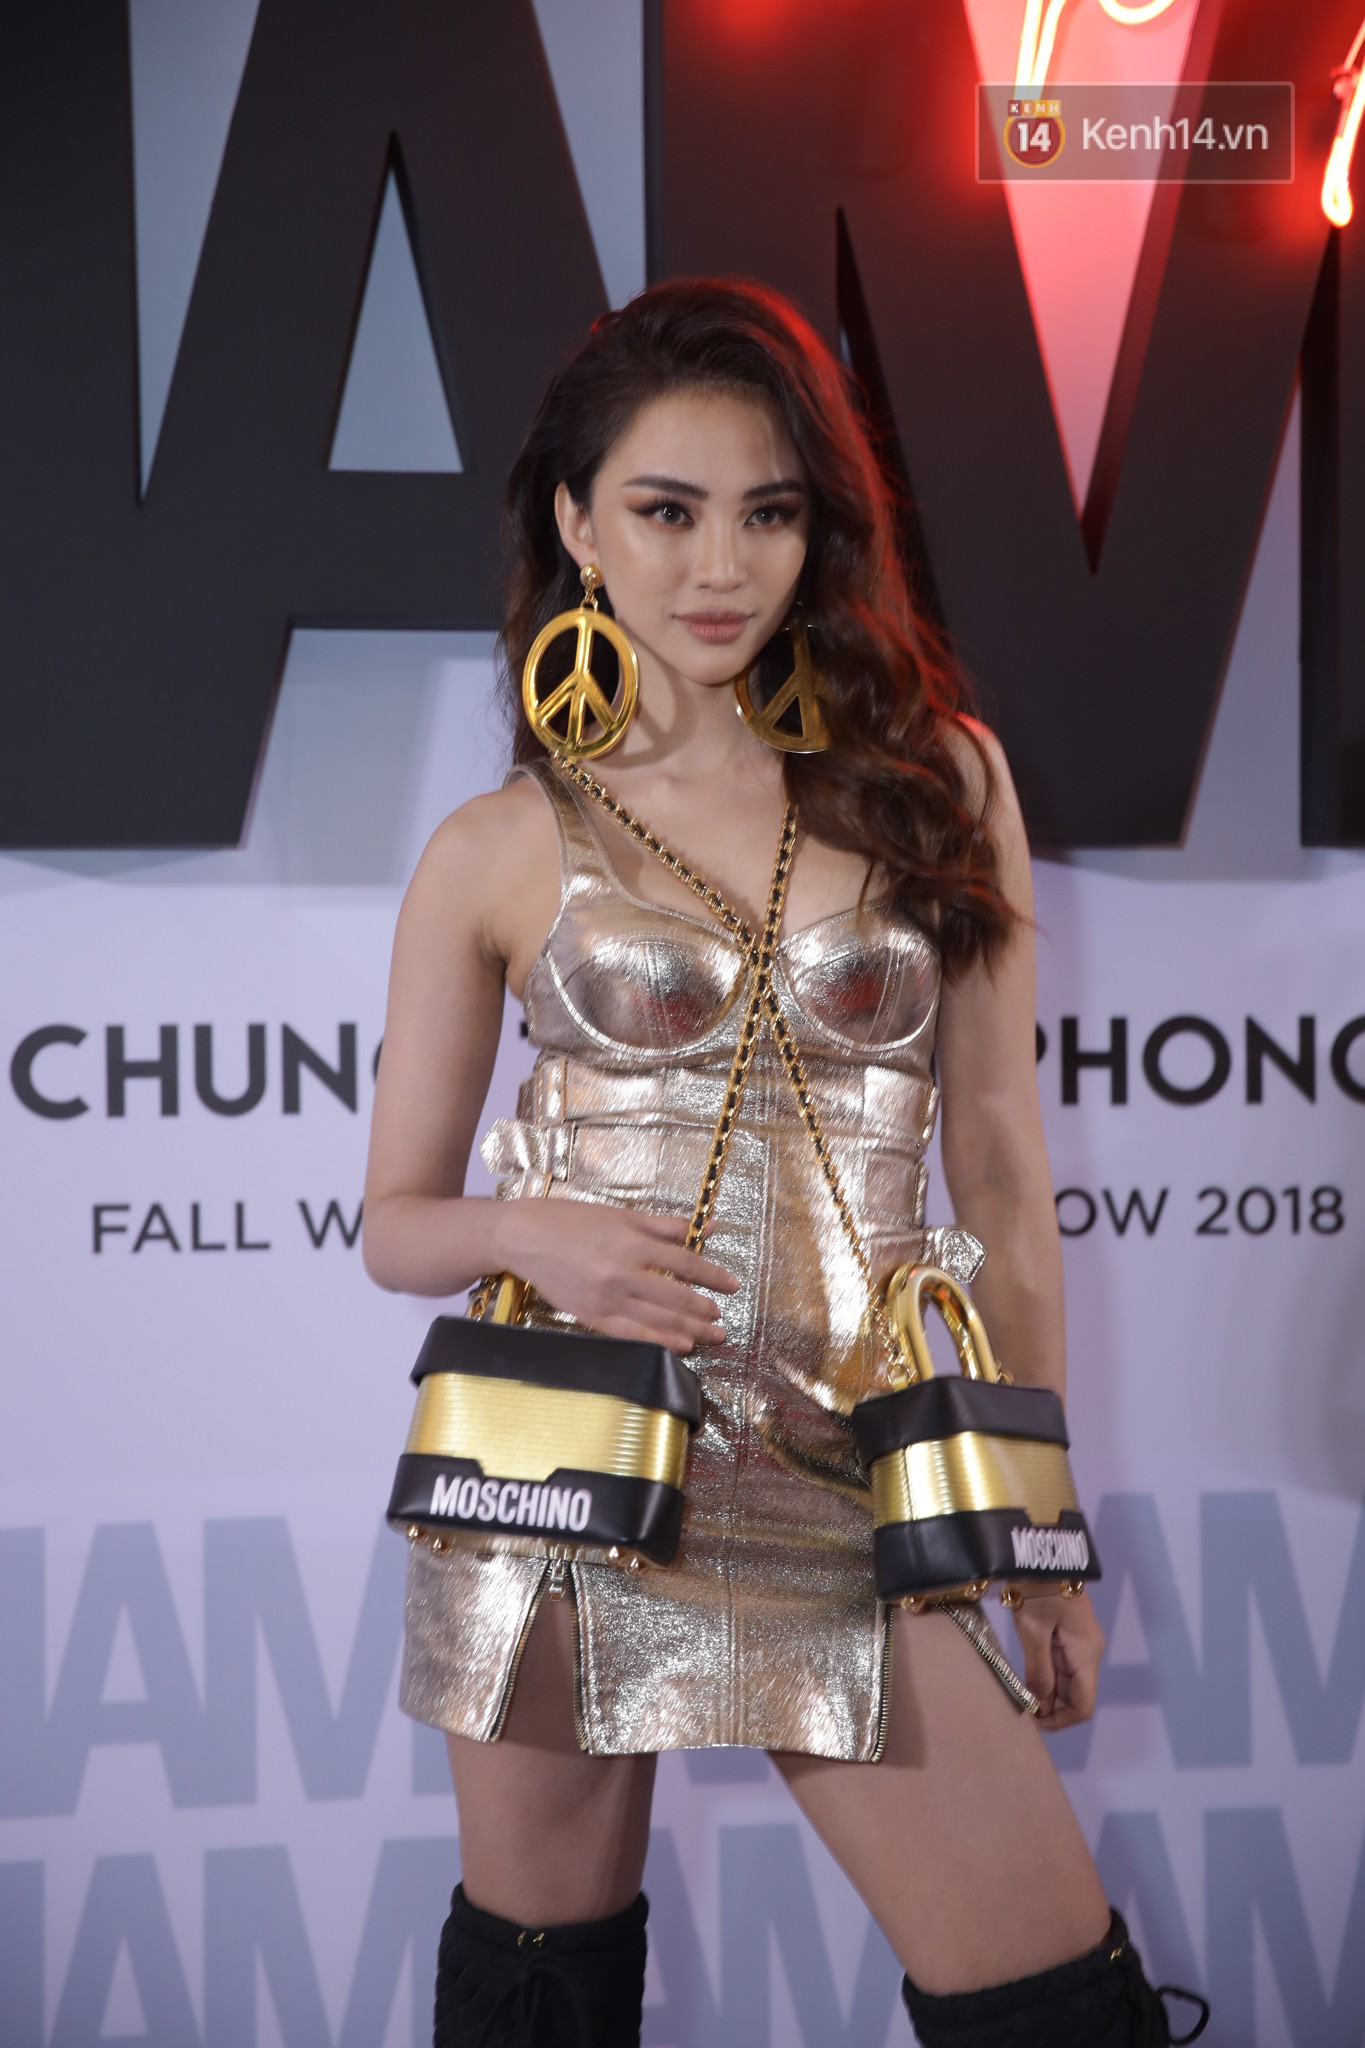 The red carpet Chung Thanh Phong show: It was able to test strange styles, as Quỳnh Anh Shyn caught the bird with rain - Photo 13.